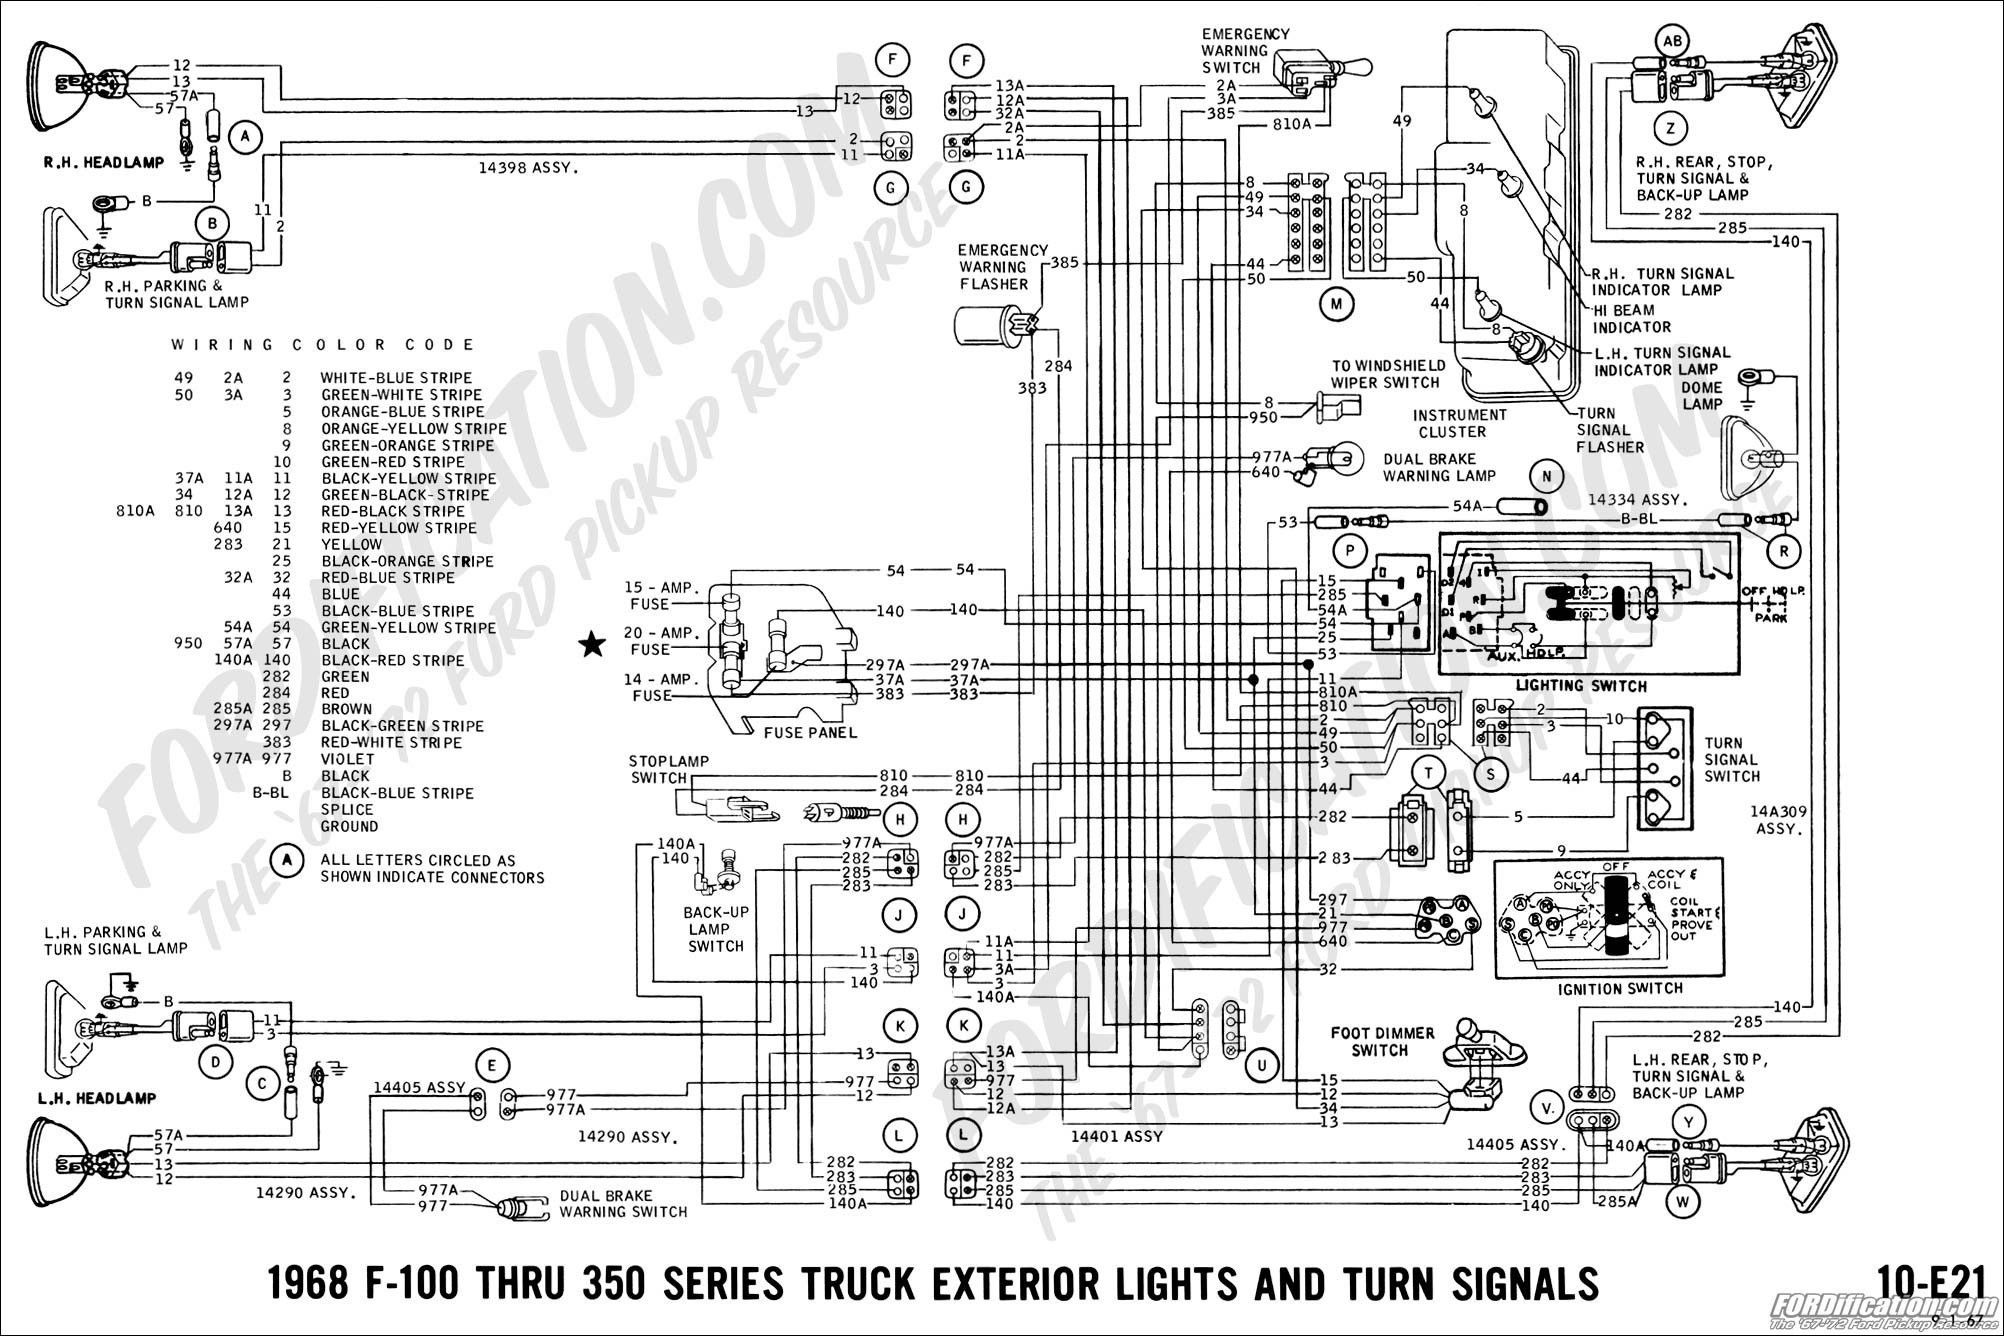 New 2003 Ford F150 Wiring Diagram In 2020 Diagram House Wiring Ford Focus Engine